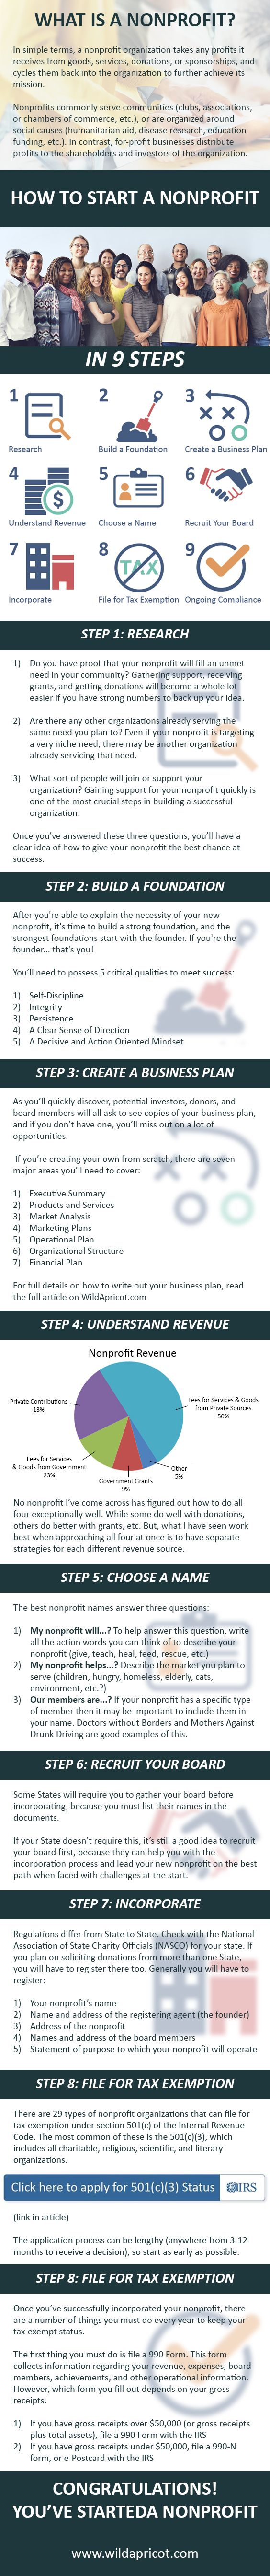 How to start a nonprofit in 9 steps including: research, business plan, revenue, 501c3 tax-exempt status, recruiting your board, and compliance.